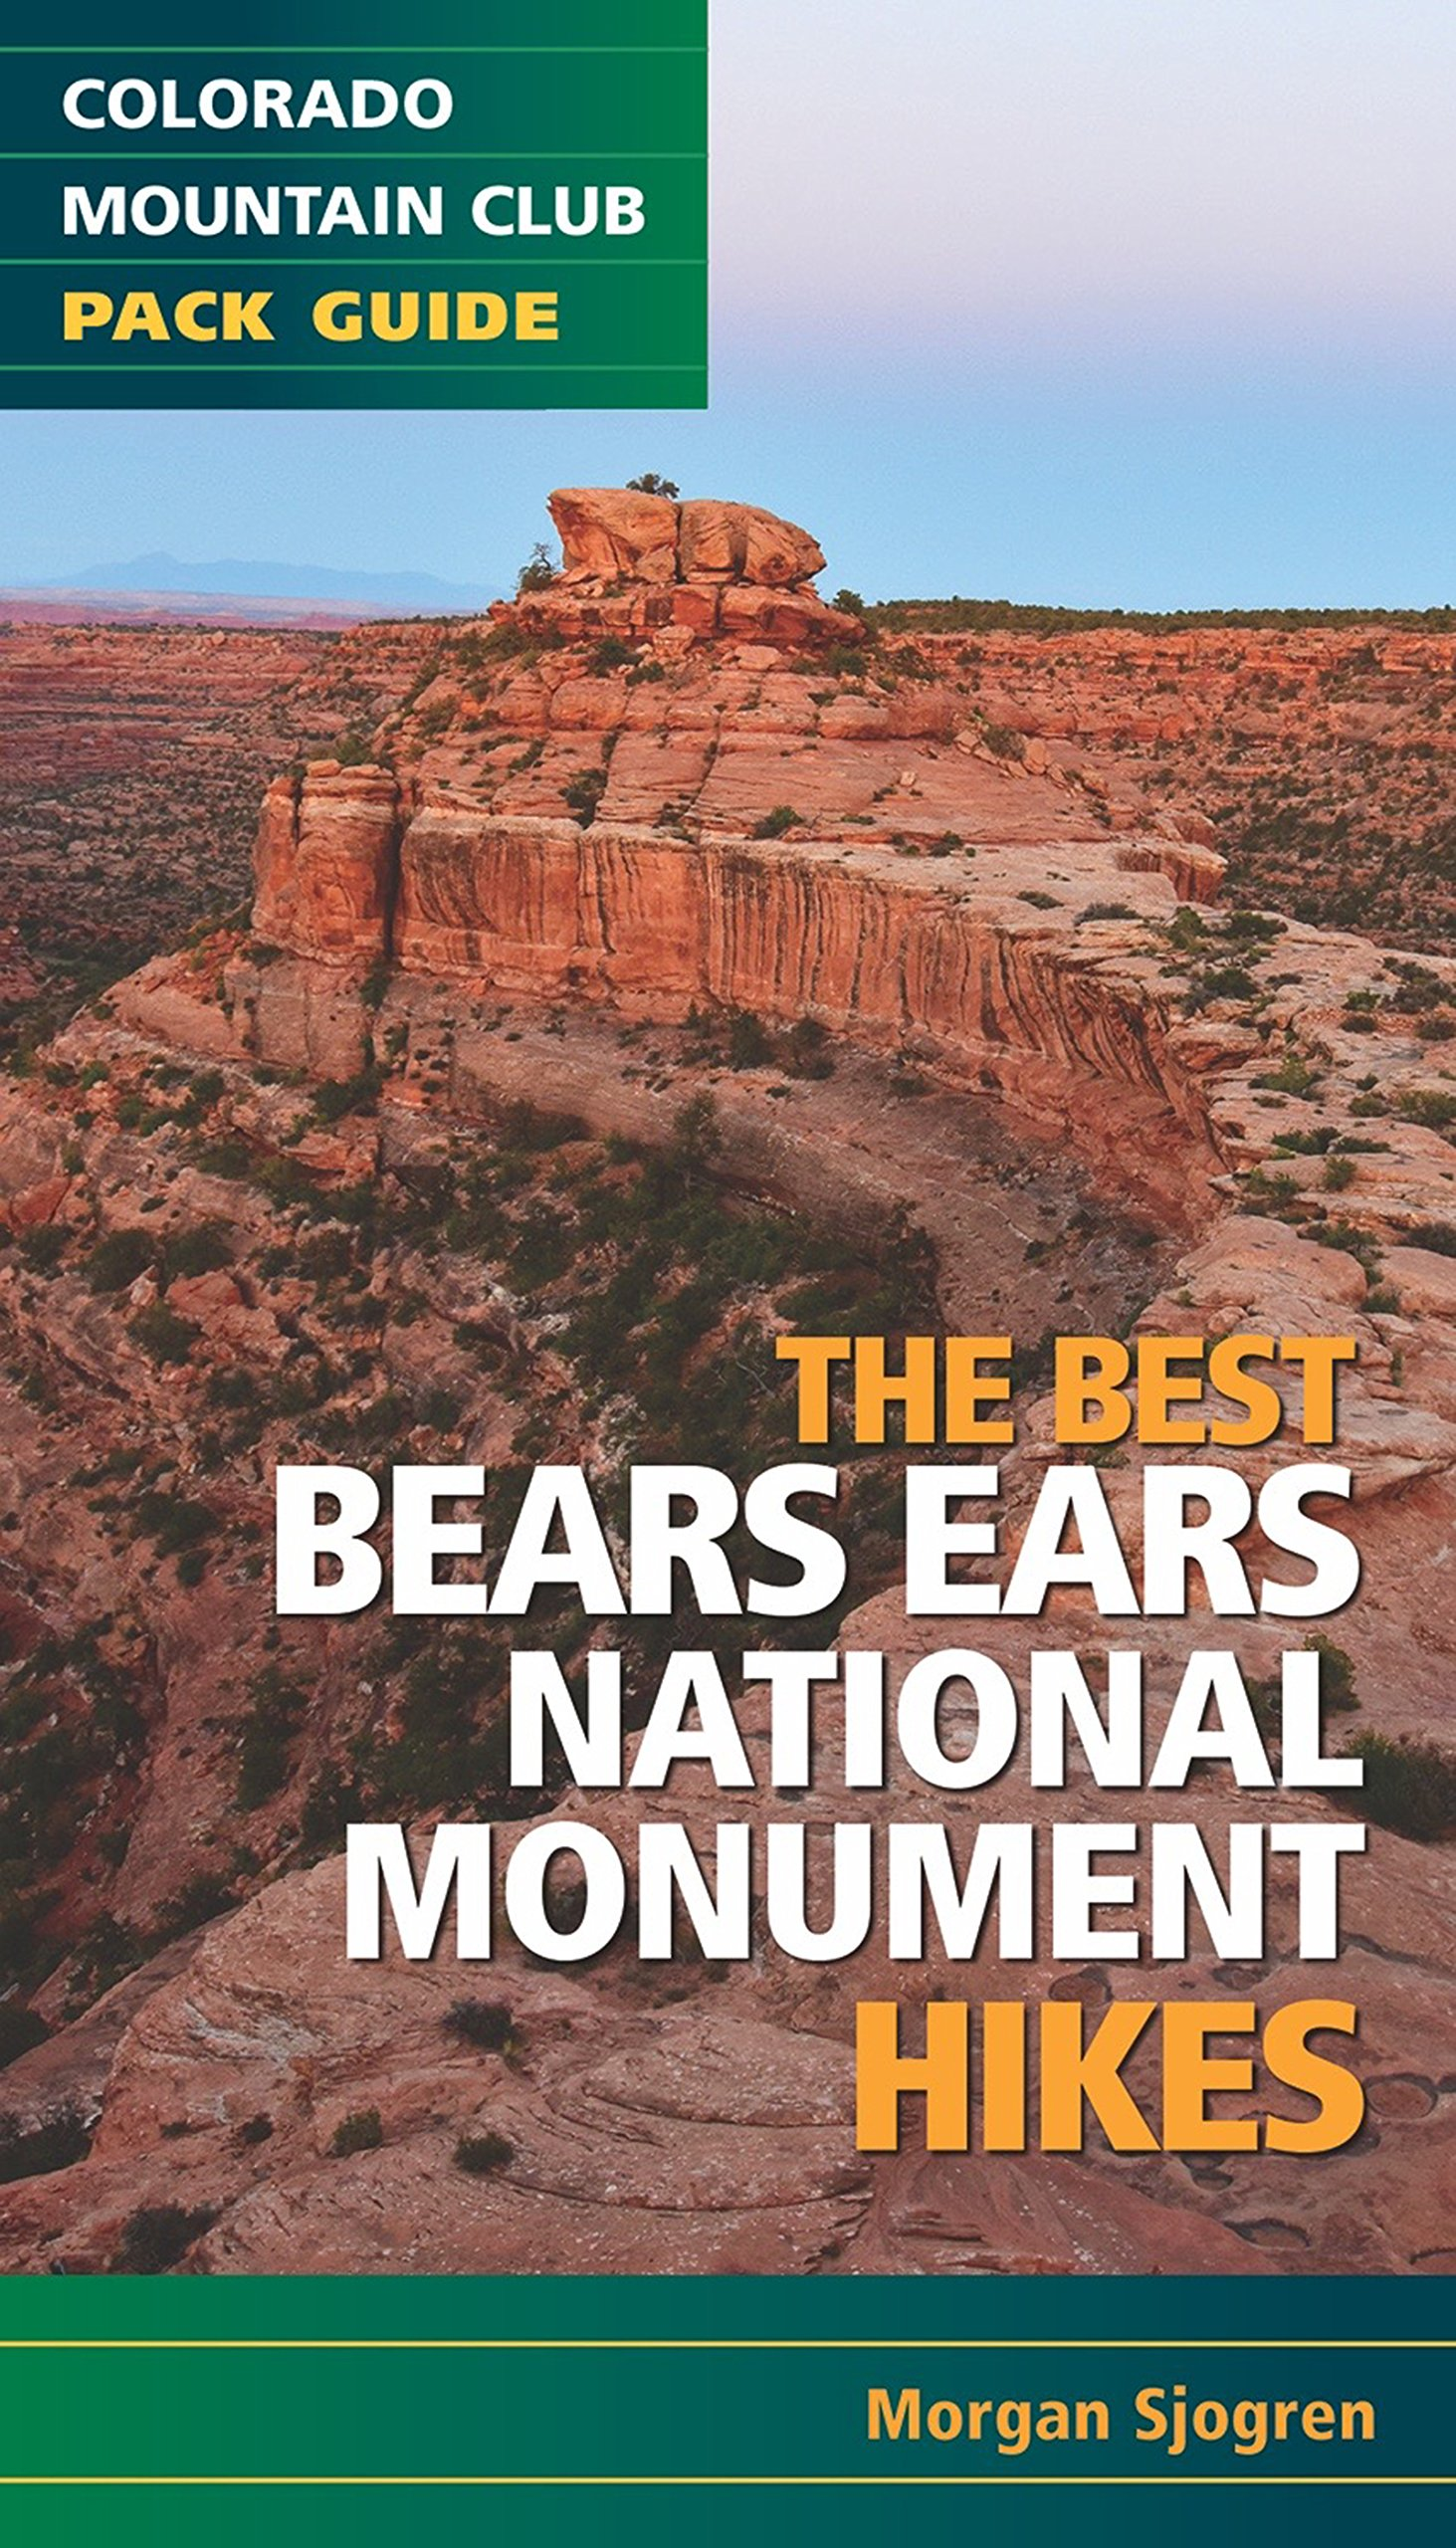 Read Online The Best Bears Ears National Monument Hikes (Colorado Mountain Club Pack Guide) PDF